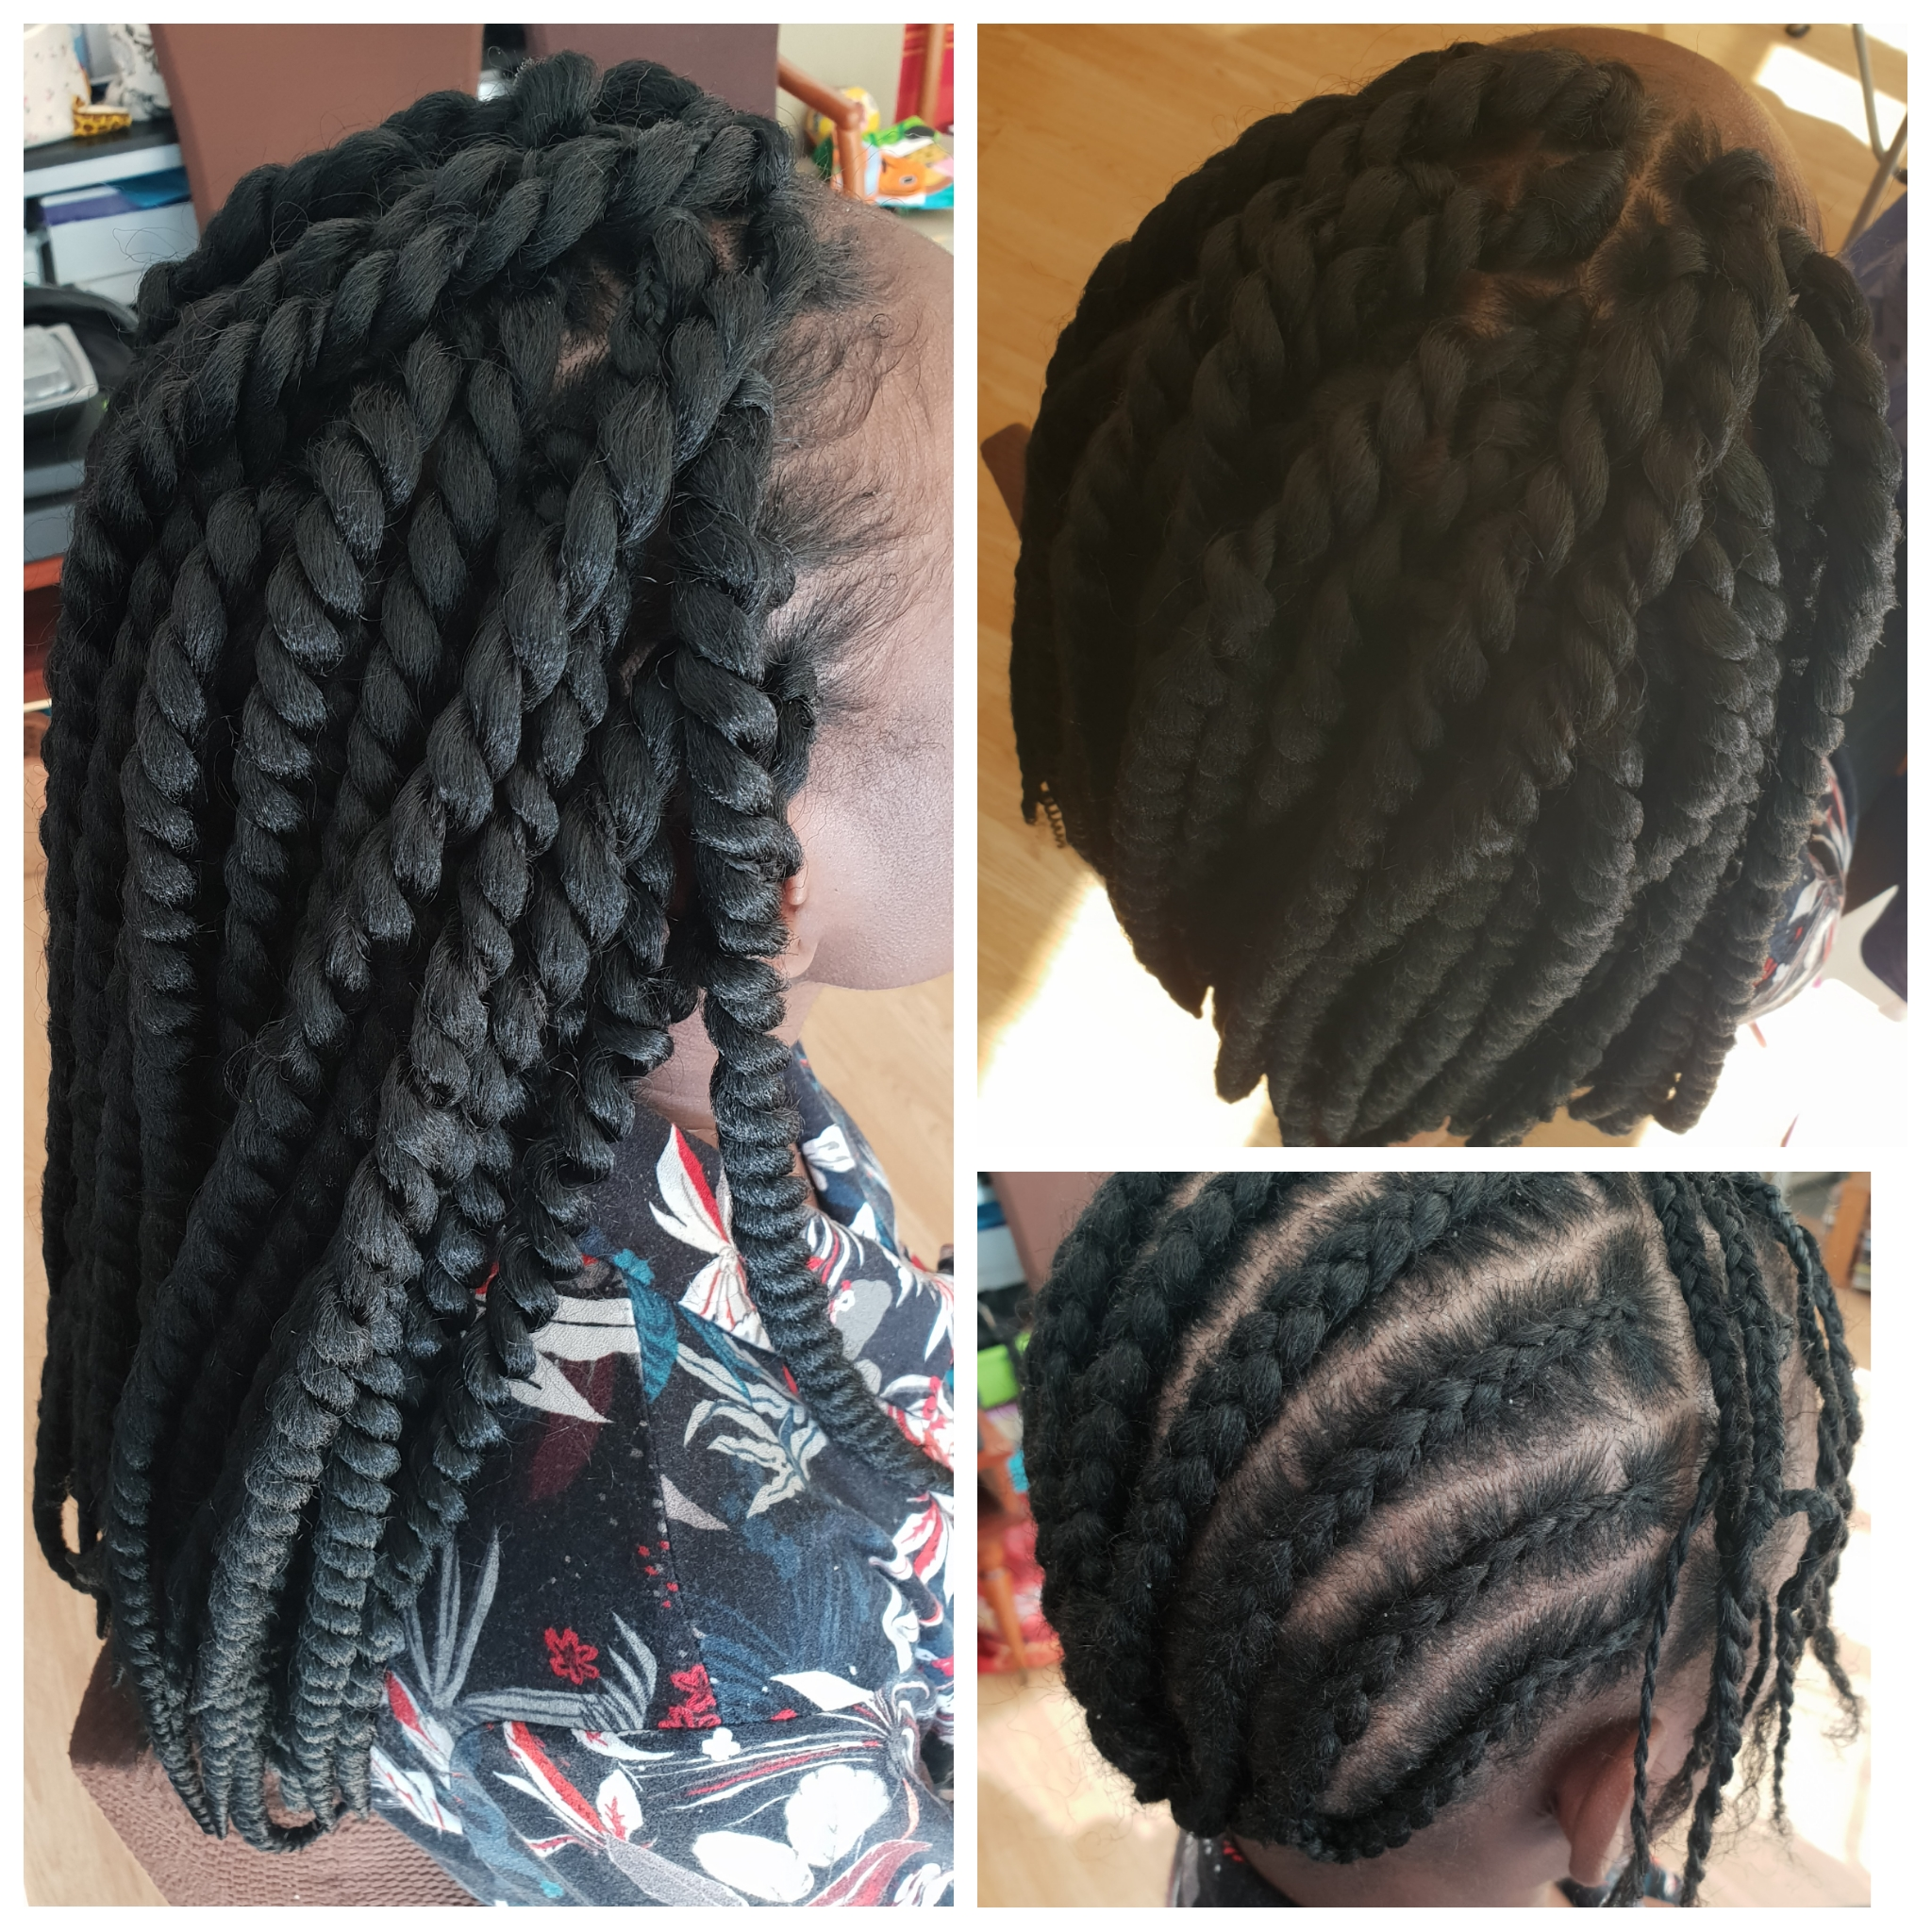 salon de coiffure afro tresse tresses box braids crochet braids vanilles tissages paris 75 77 78 91 92 93 94 95 YWBDTZRC